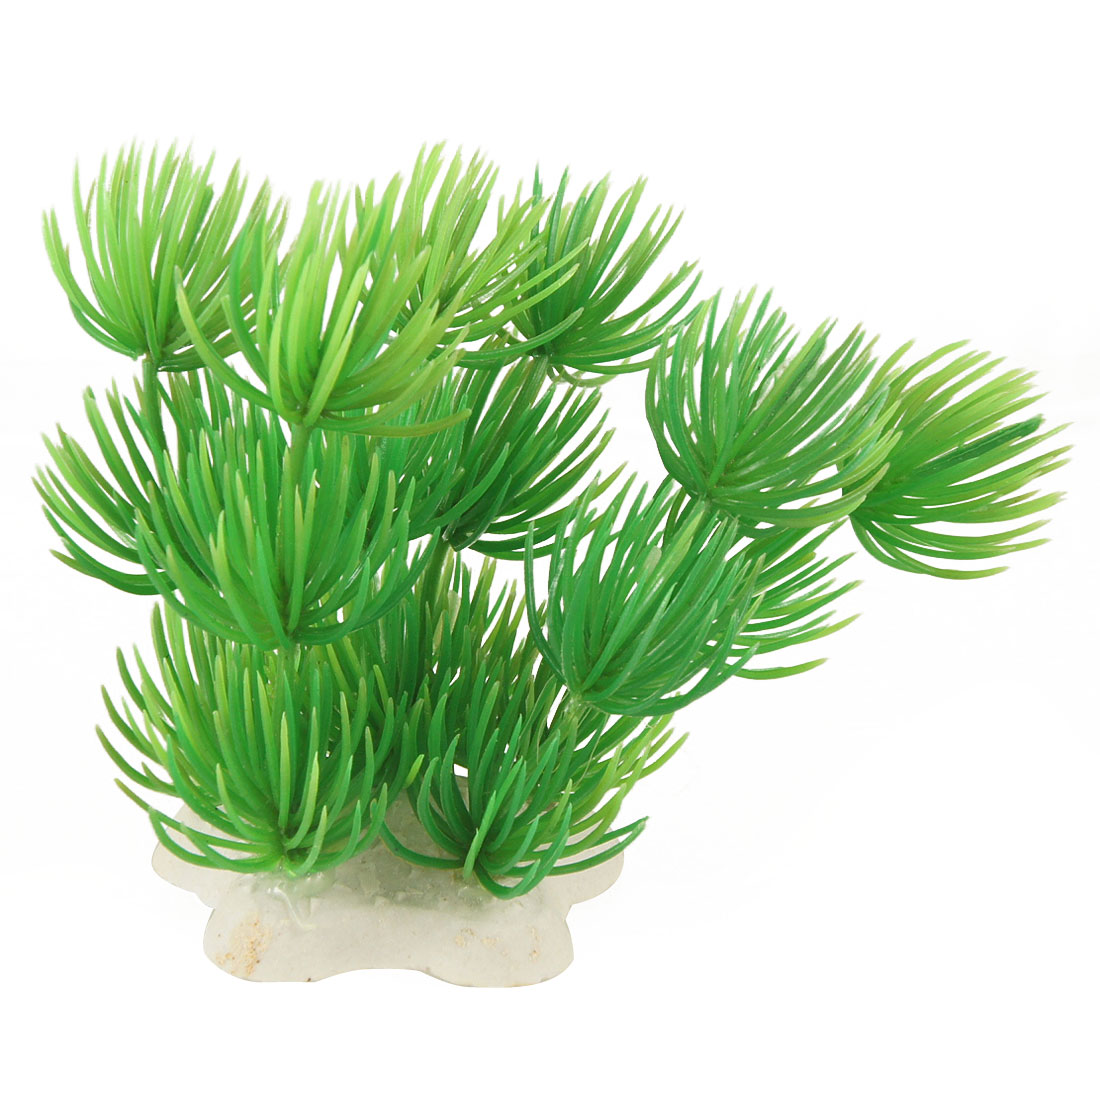 Green Plastic Plants Lanscaping Ornament for Aquarium Fish Tank